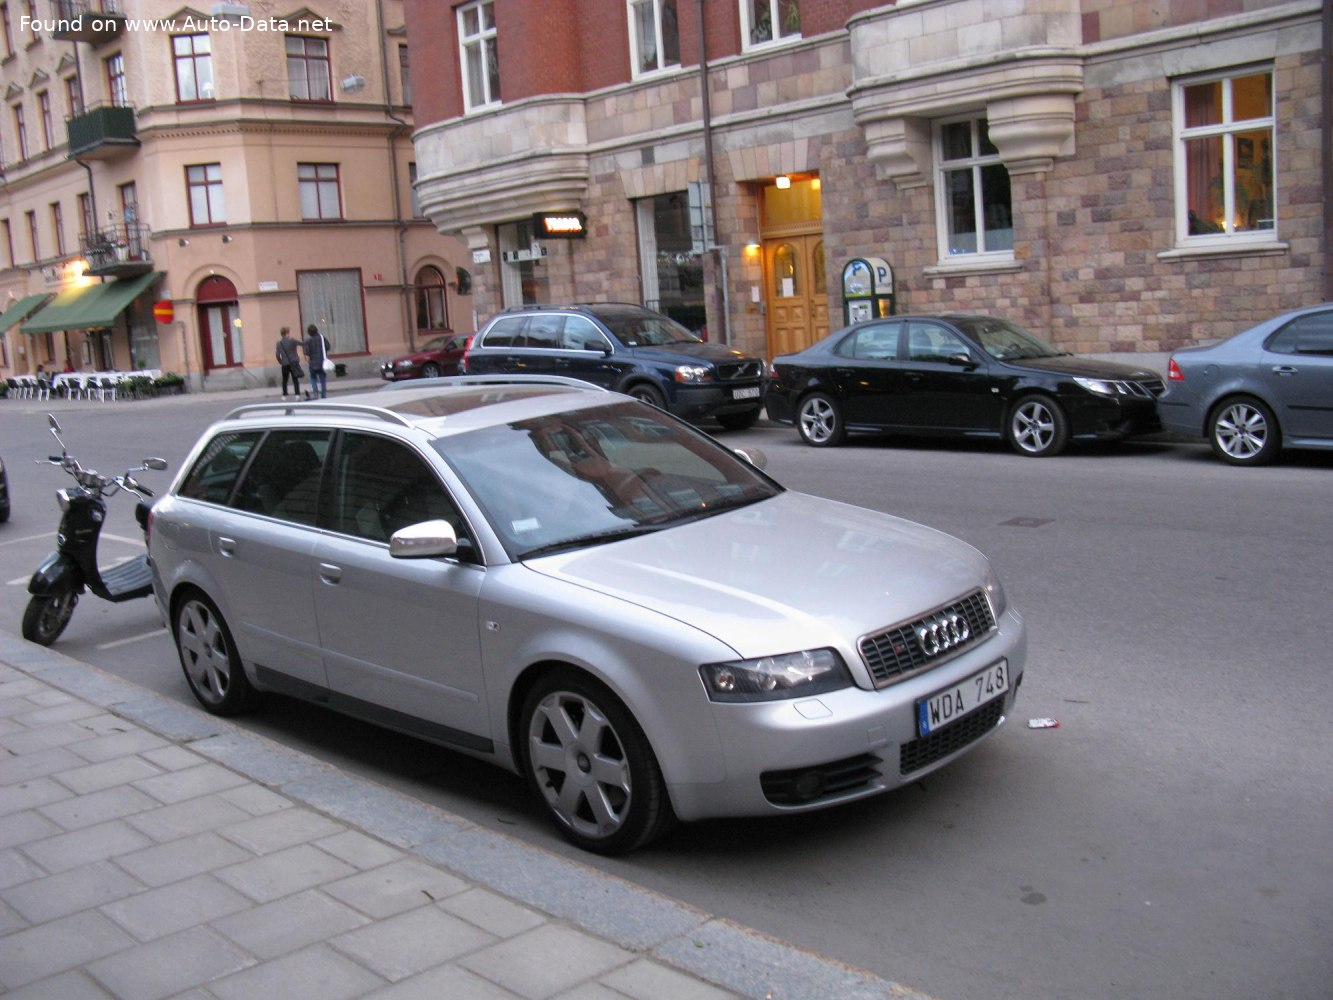 2003 Audi S4 Avant 8e B6 4 2i V8 344 Hp Quattro Technical Specs Data Fuel Consumption Dimensions